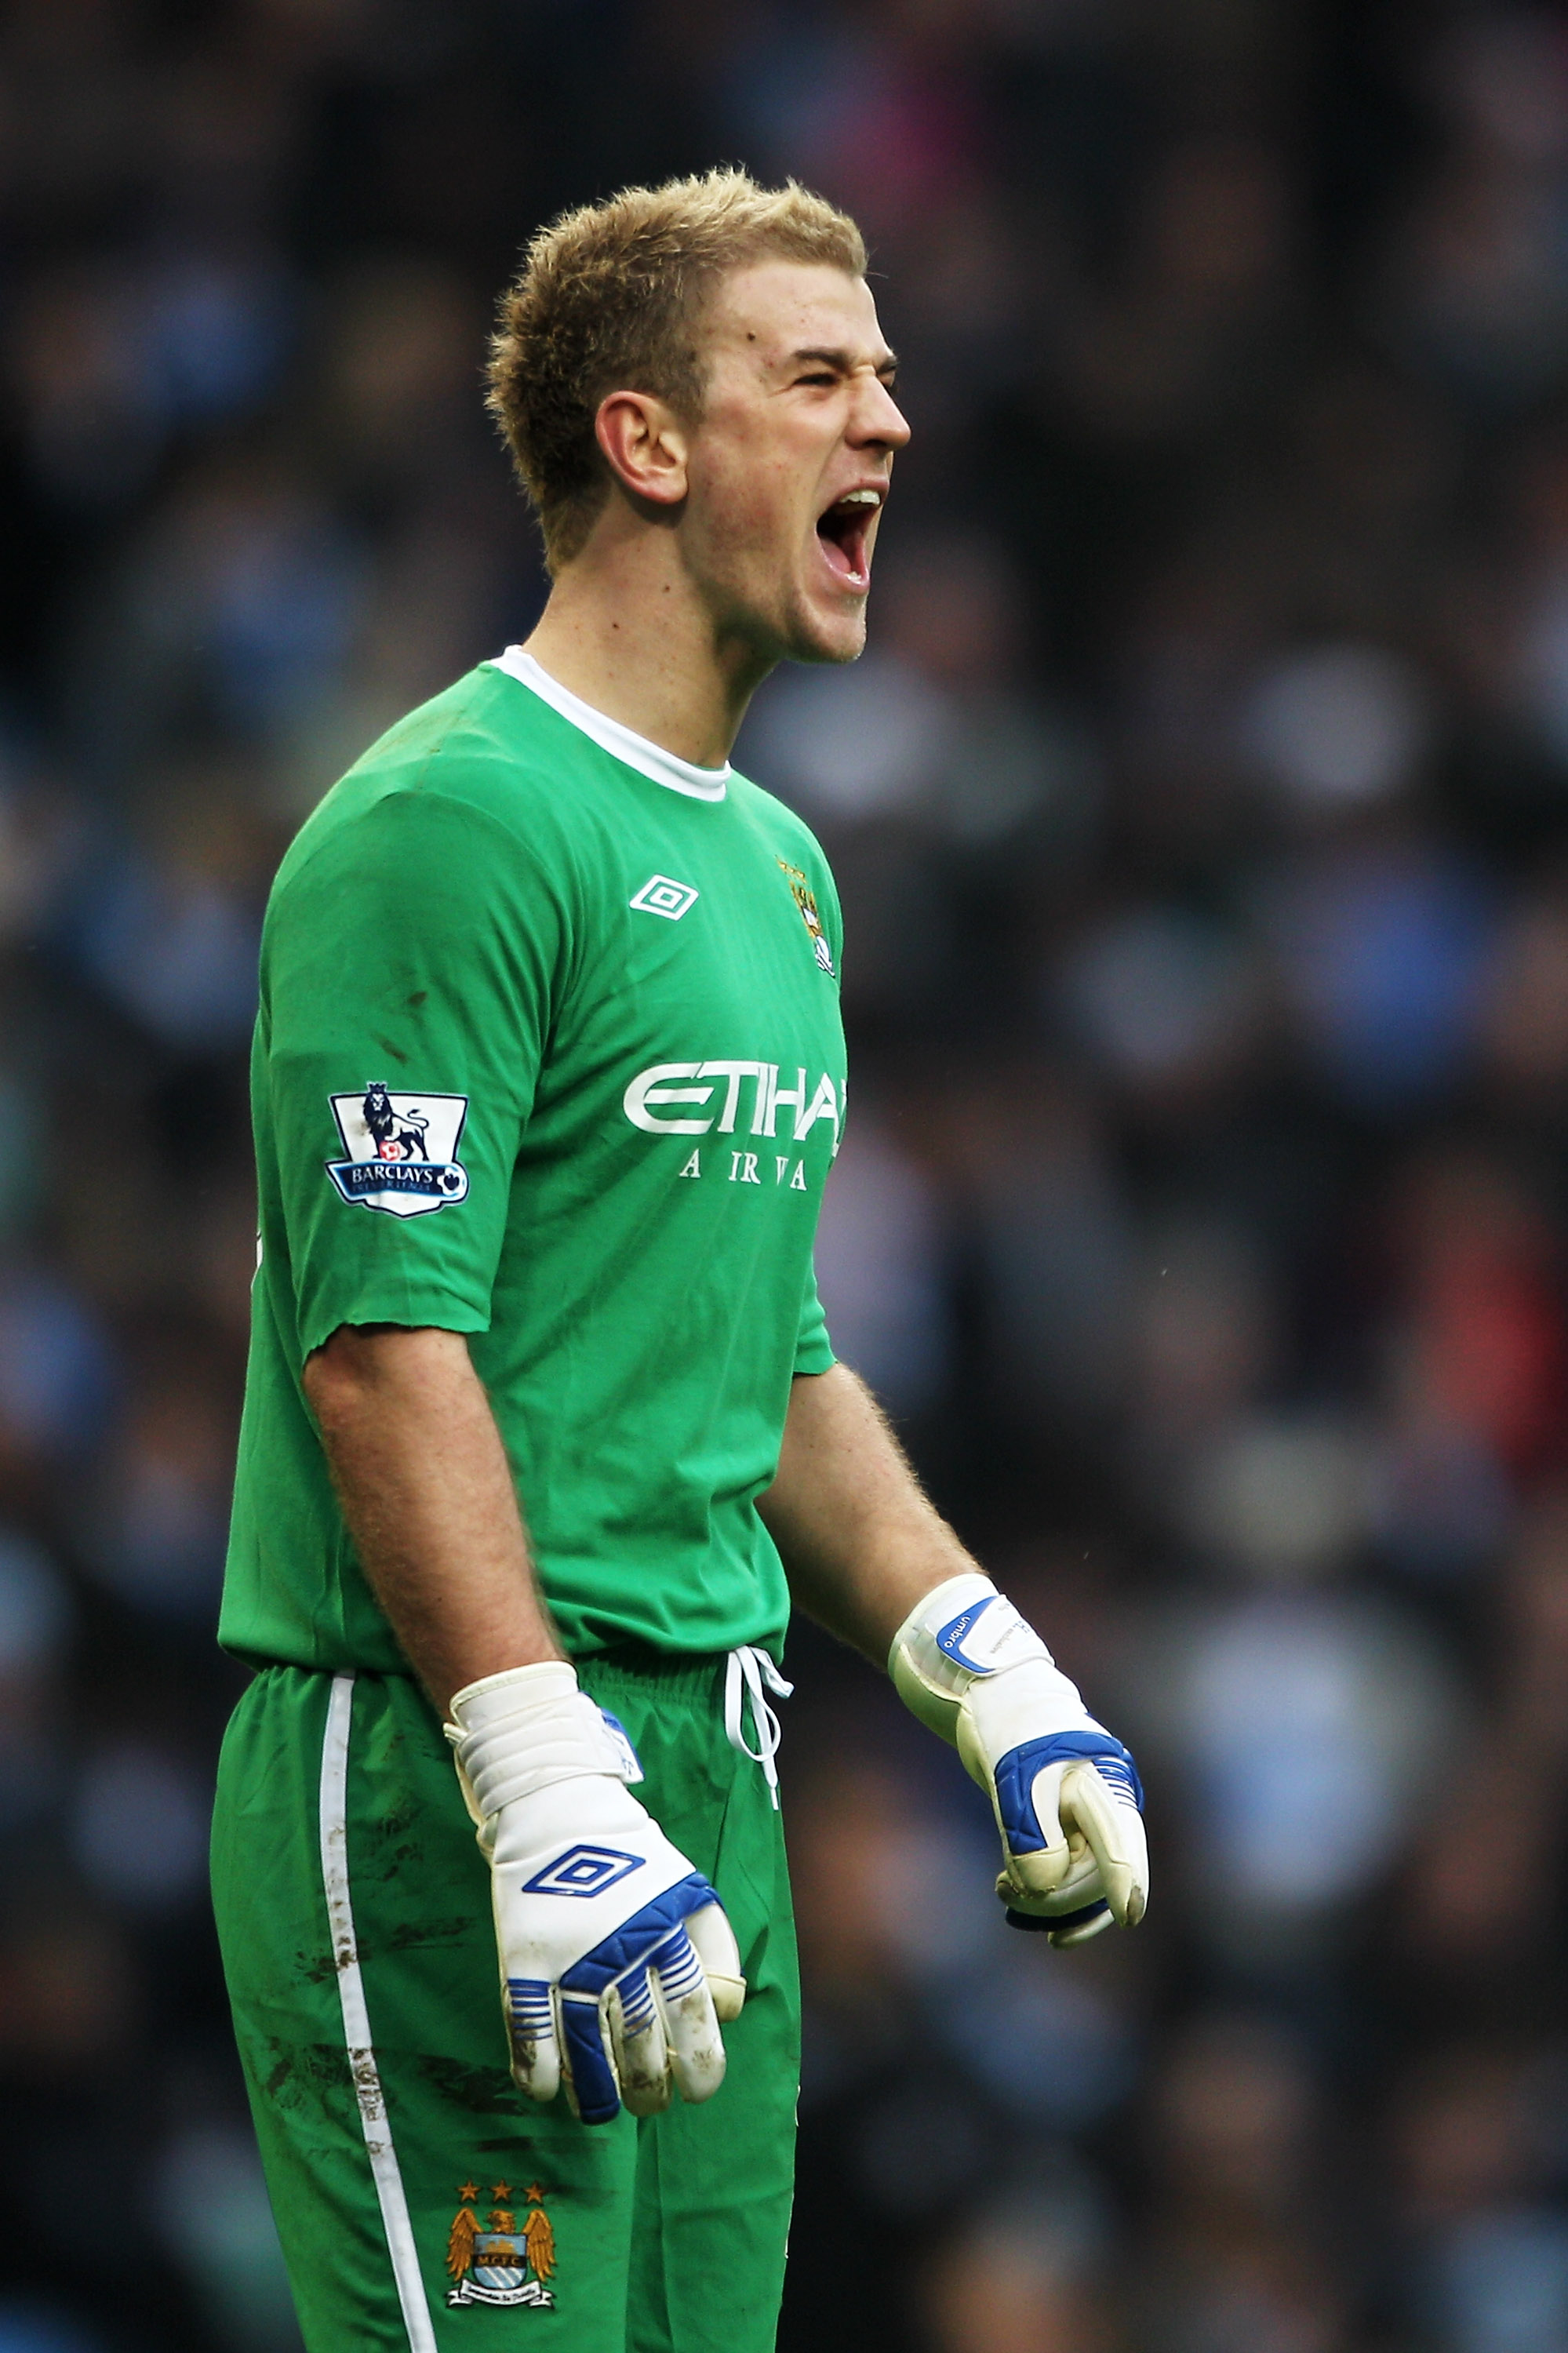 MANCHESTER, ENGLAND - FEBRUARY 20:  Joe Hart of Manchester City shouts instructions during the FA Cup sponsored by E.On 4th Round replay match between Manchester City and Notts County at City of Manchester Stadium on February 20, 2011 in Manchester, Engla